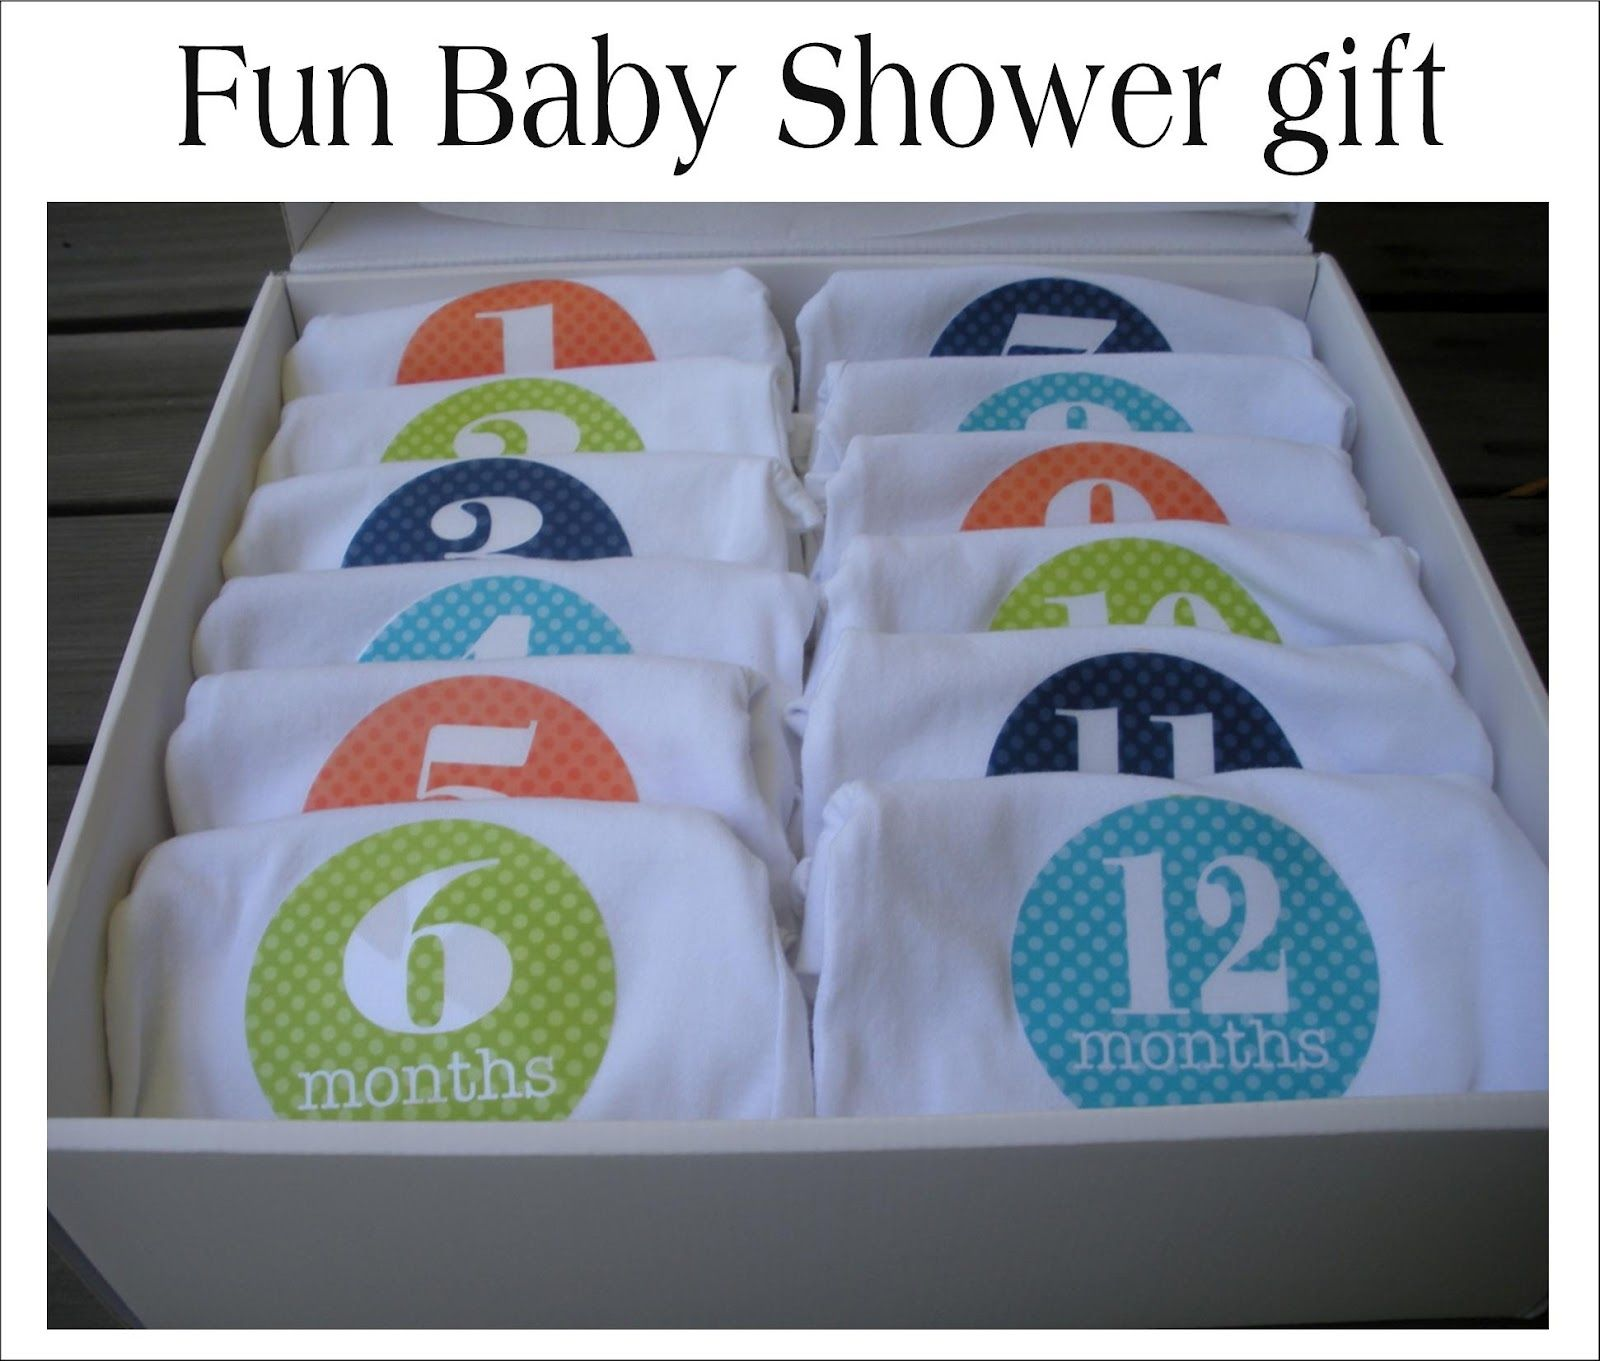 Special baby shower gifts uk special baby shower gifts coupon special baby shower gifts uk special baby shower gifts coupon 2015 2016 negle Gallery